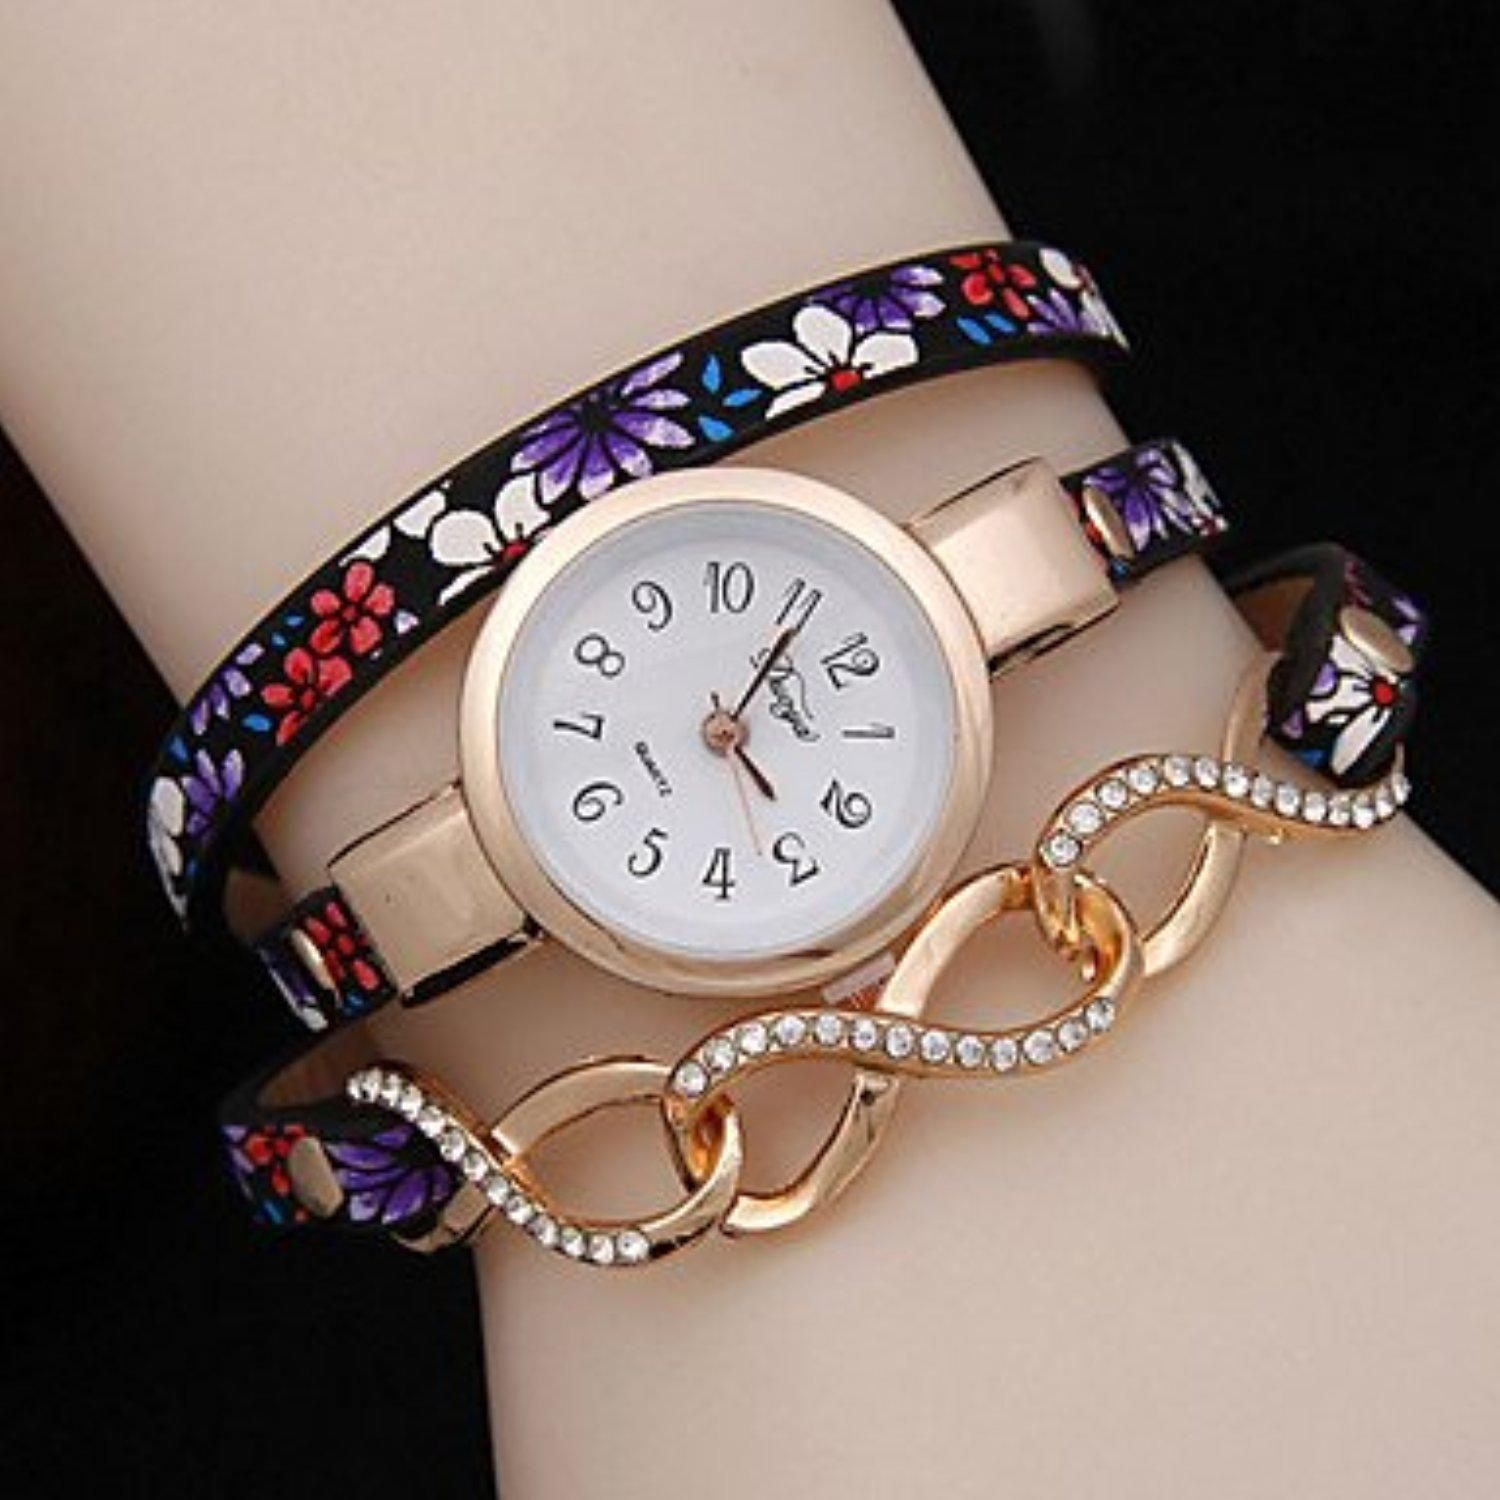 Women's Three Winding Folk Style Floral Twist Bracelet Watch Cool Watches Unique Watches ( Color : Black-Blue , Gender : For Lady ) - Brought to you by Avarsha.com